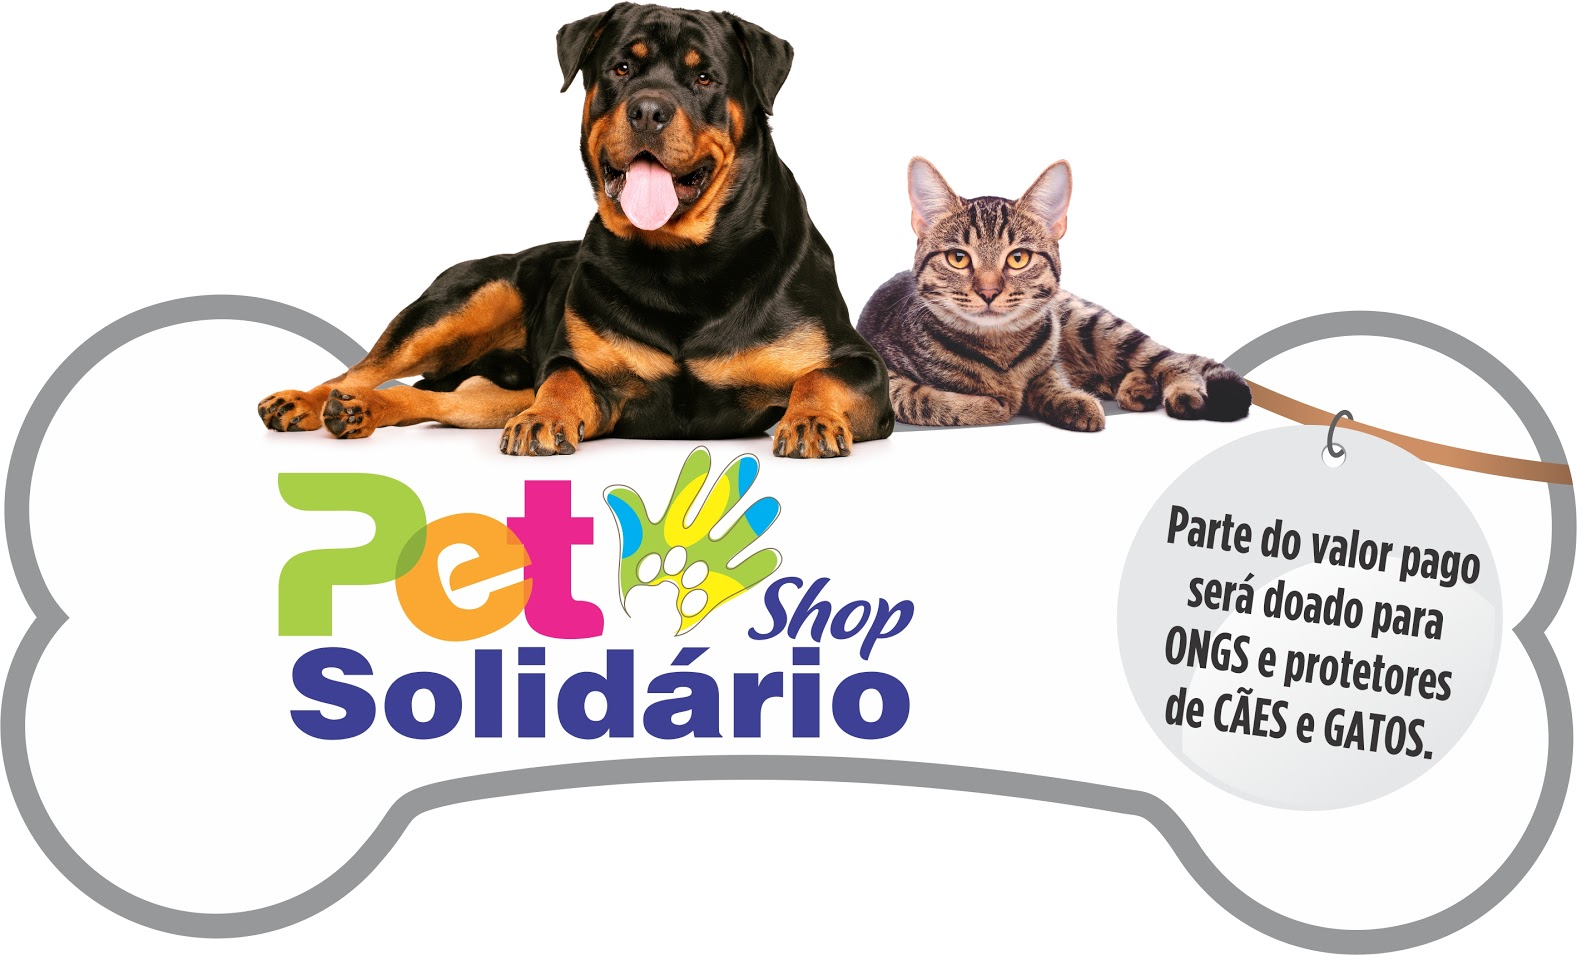 Pet Shop SOLIDÁRIO